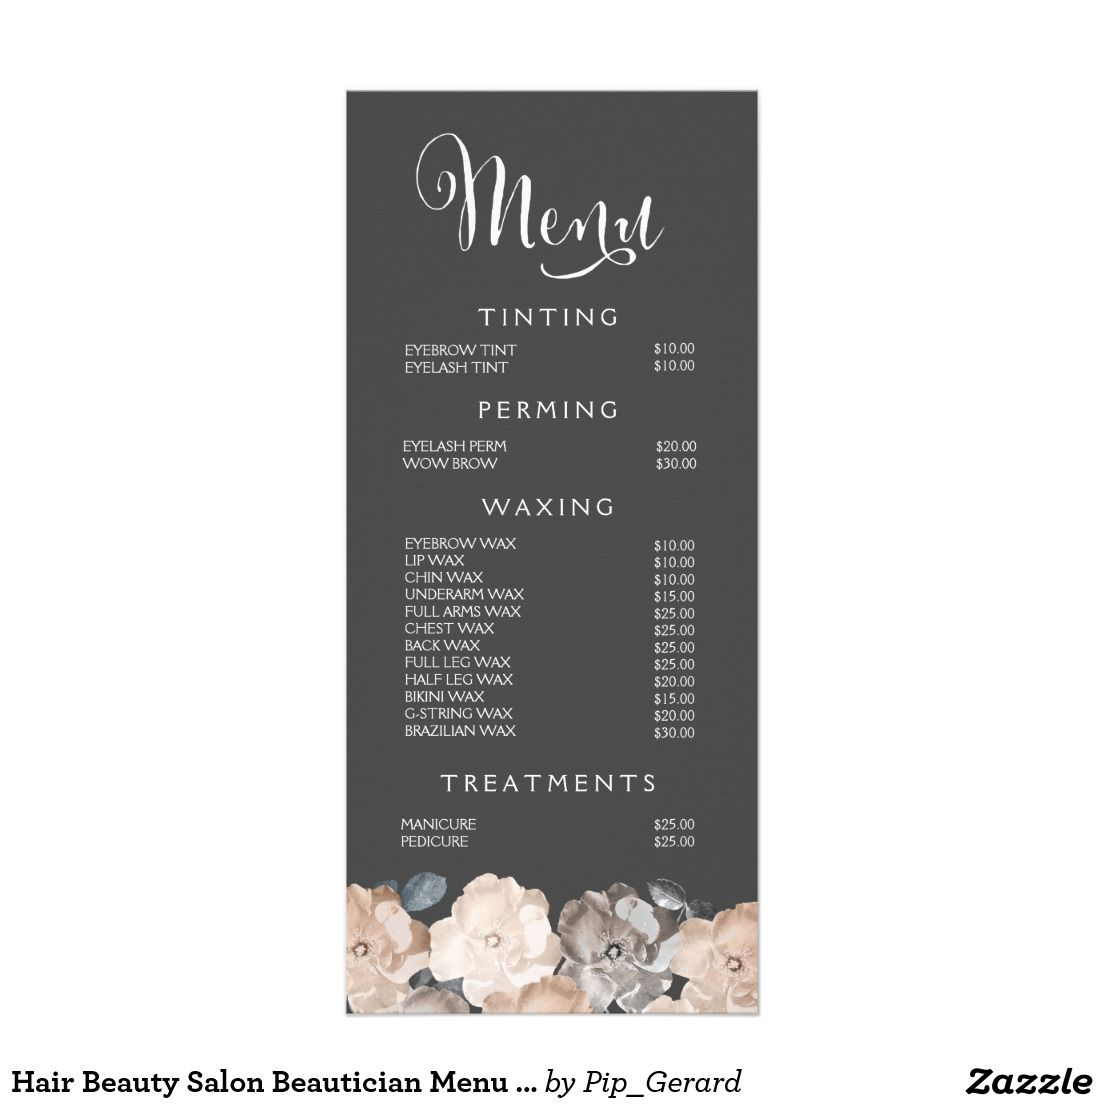 Spa menu template google search spa ideas pinterest spa menu spa menu template google search flashek